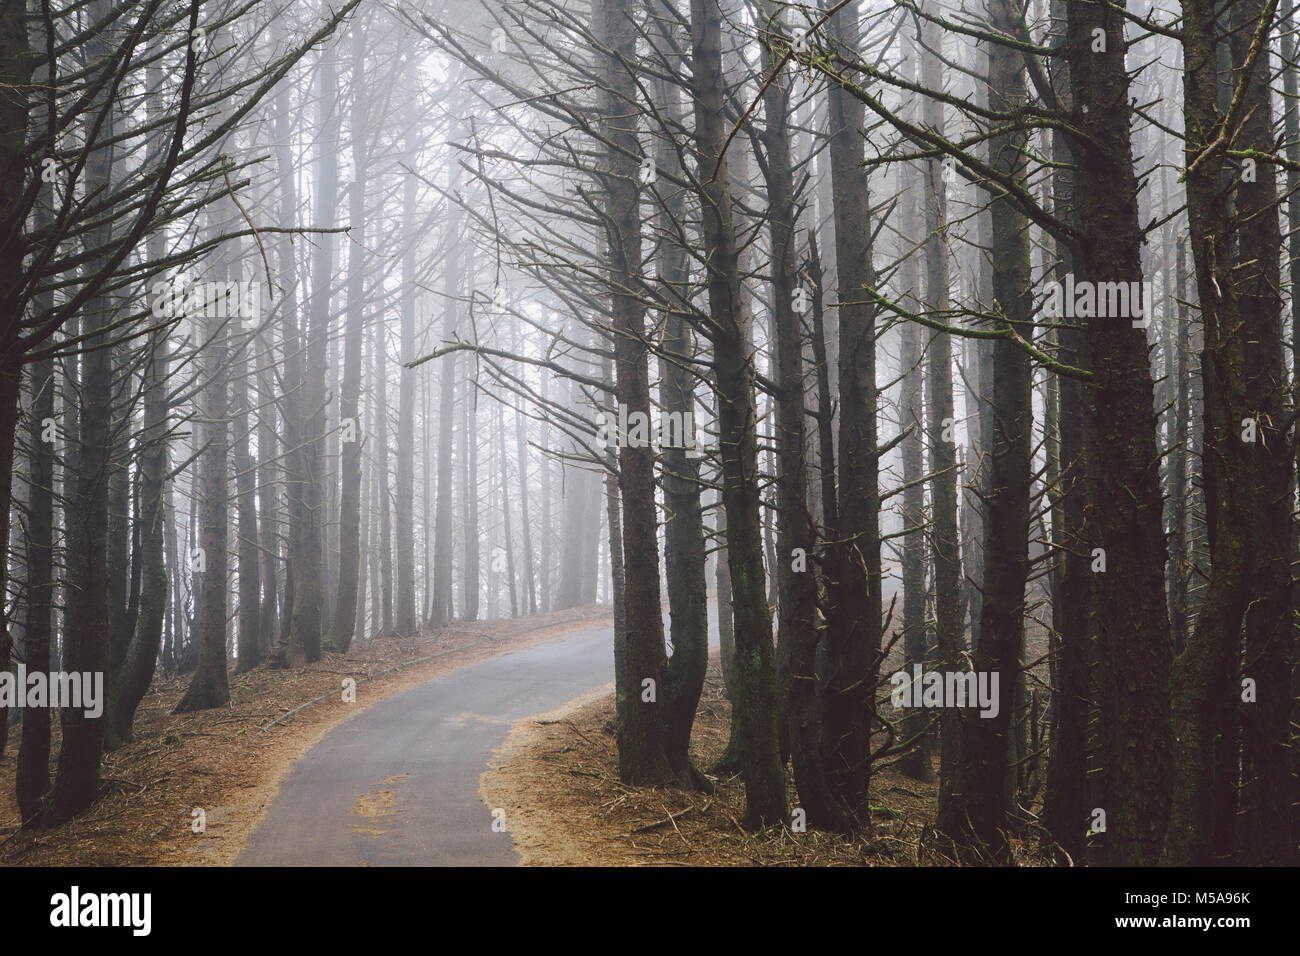 A road winding through trees in the forest, mist hanging in the air. - Stock Image